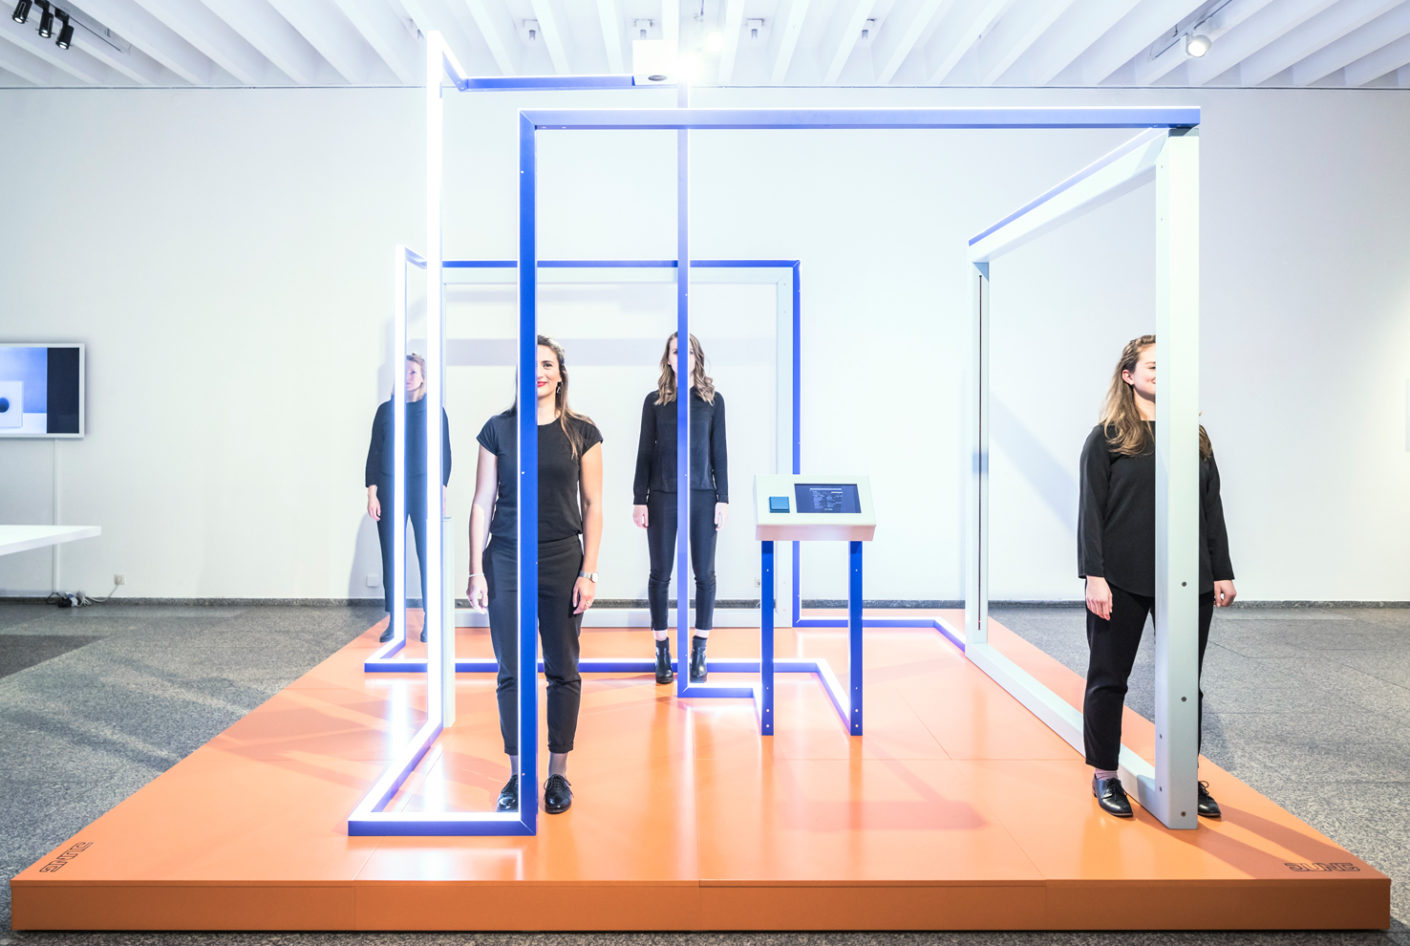 The installation was devised jointly by Jung and four Master's students at Detmolder Schule für Architektur und Innenarchitektur: Sarah Gmelin, Marielle Kanne, Mona Makebrandt and Marisa Spieker.